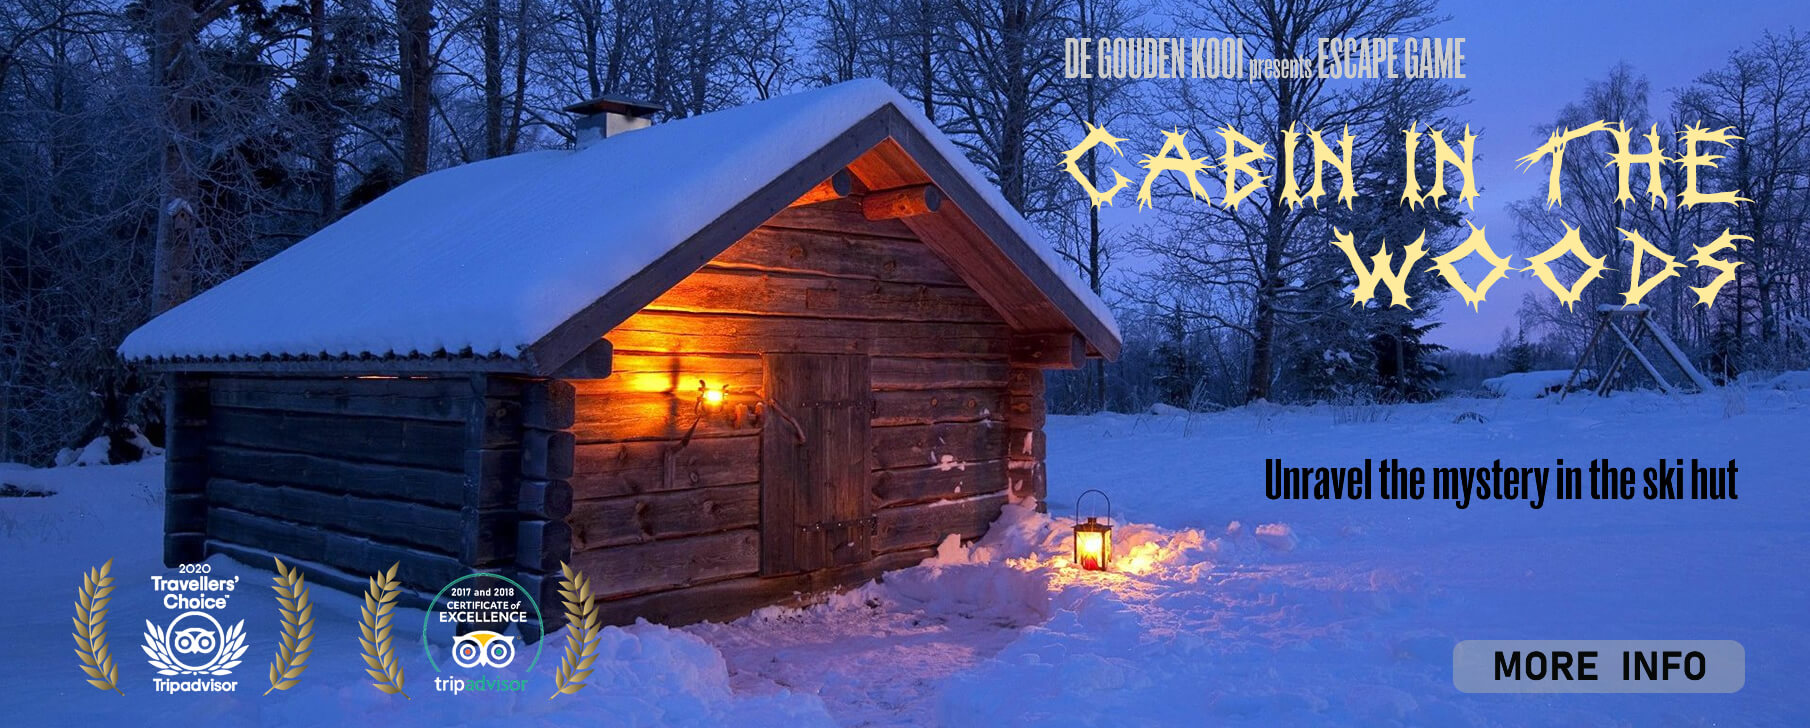 Cabin in the woods -eng